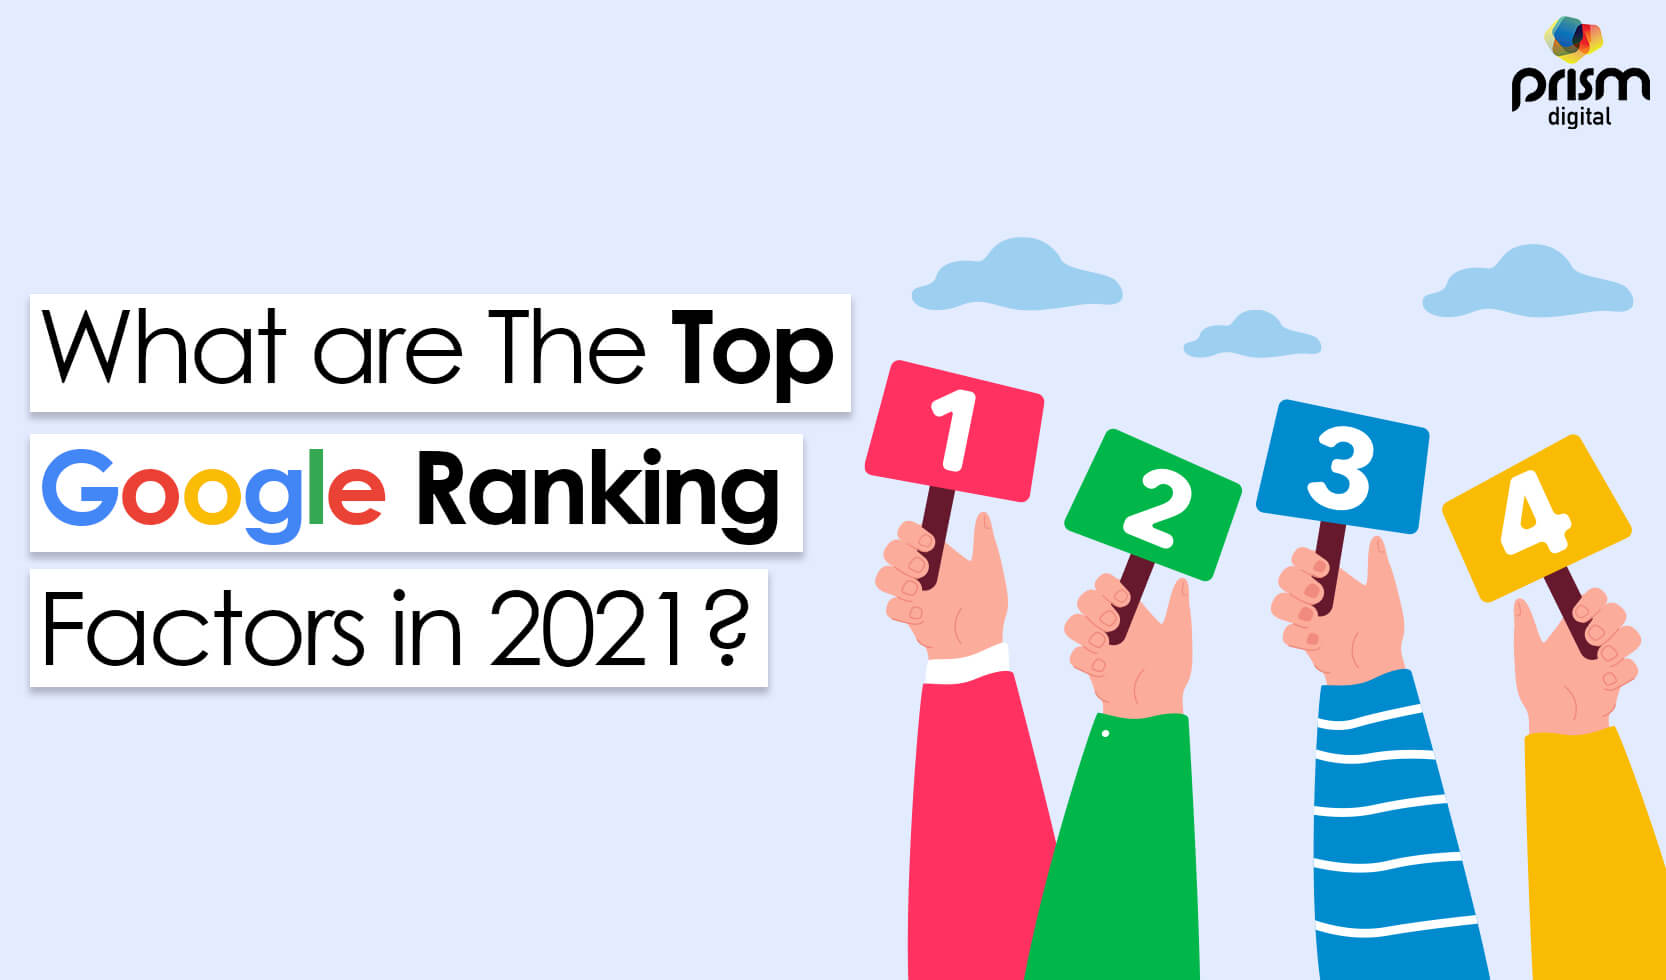 What are the top Google Ranking Factors in 2021